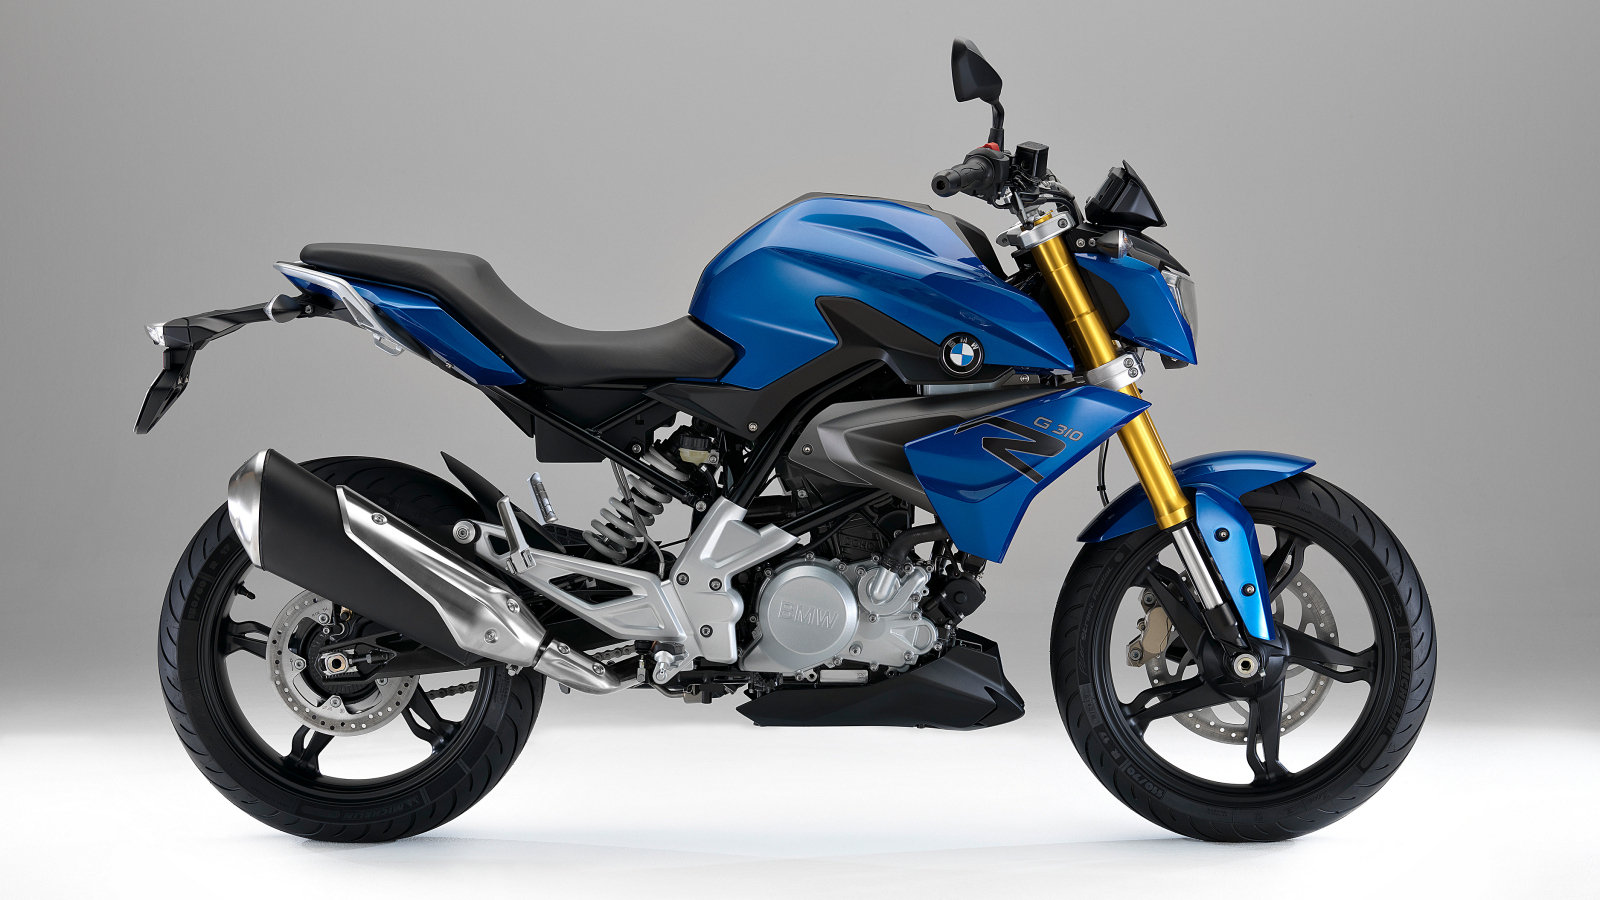 2016 bmw g 310 r picture 684733 motorcycle review. Black Bedroom Furniture Sets. Home Design Ideas